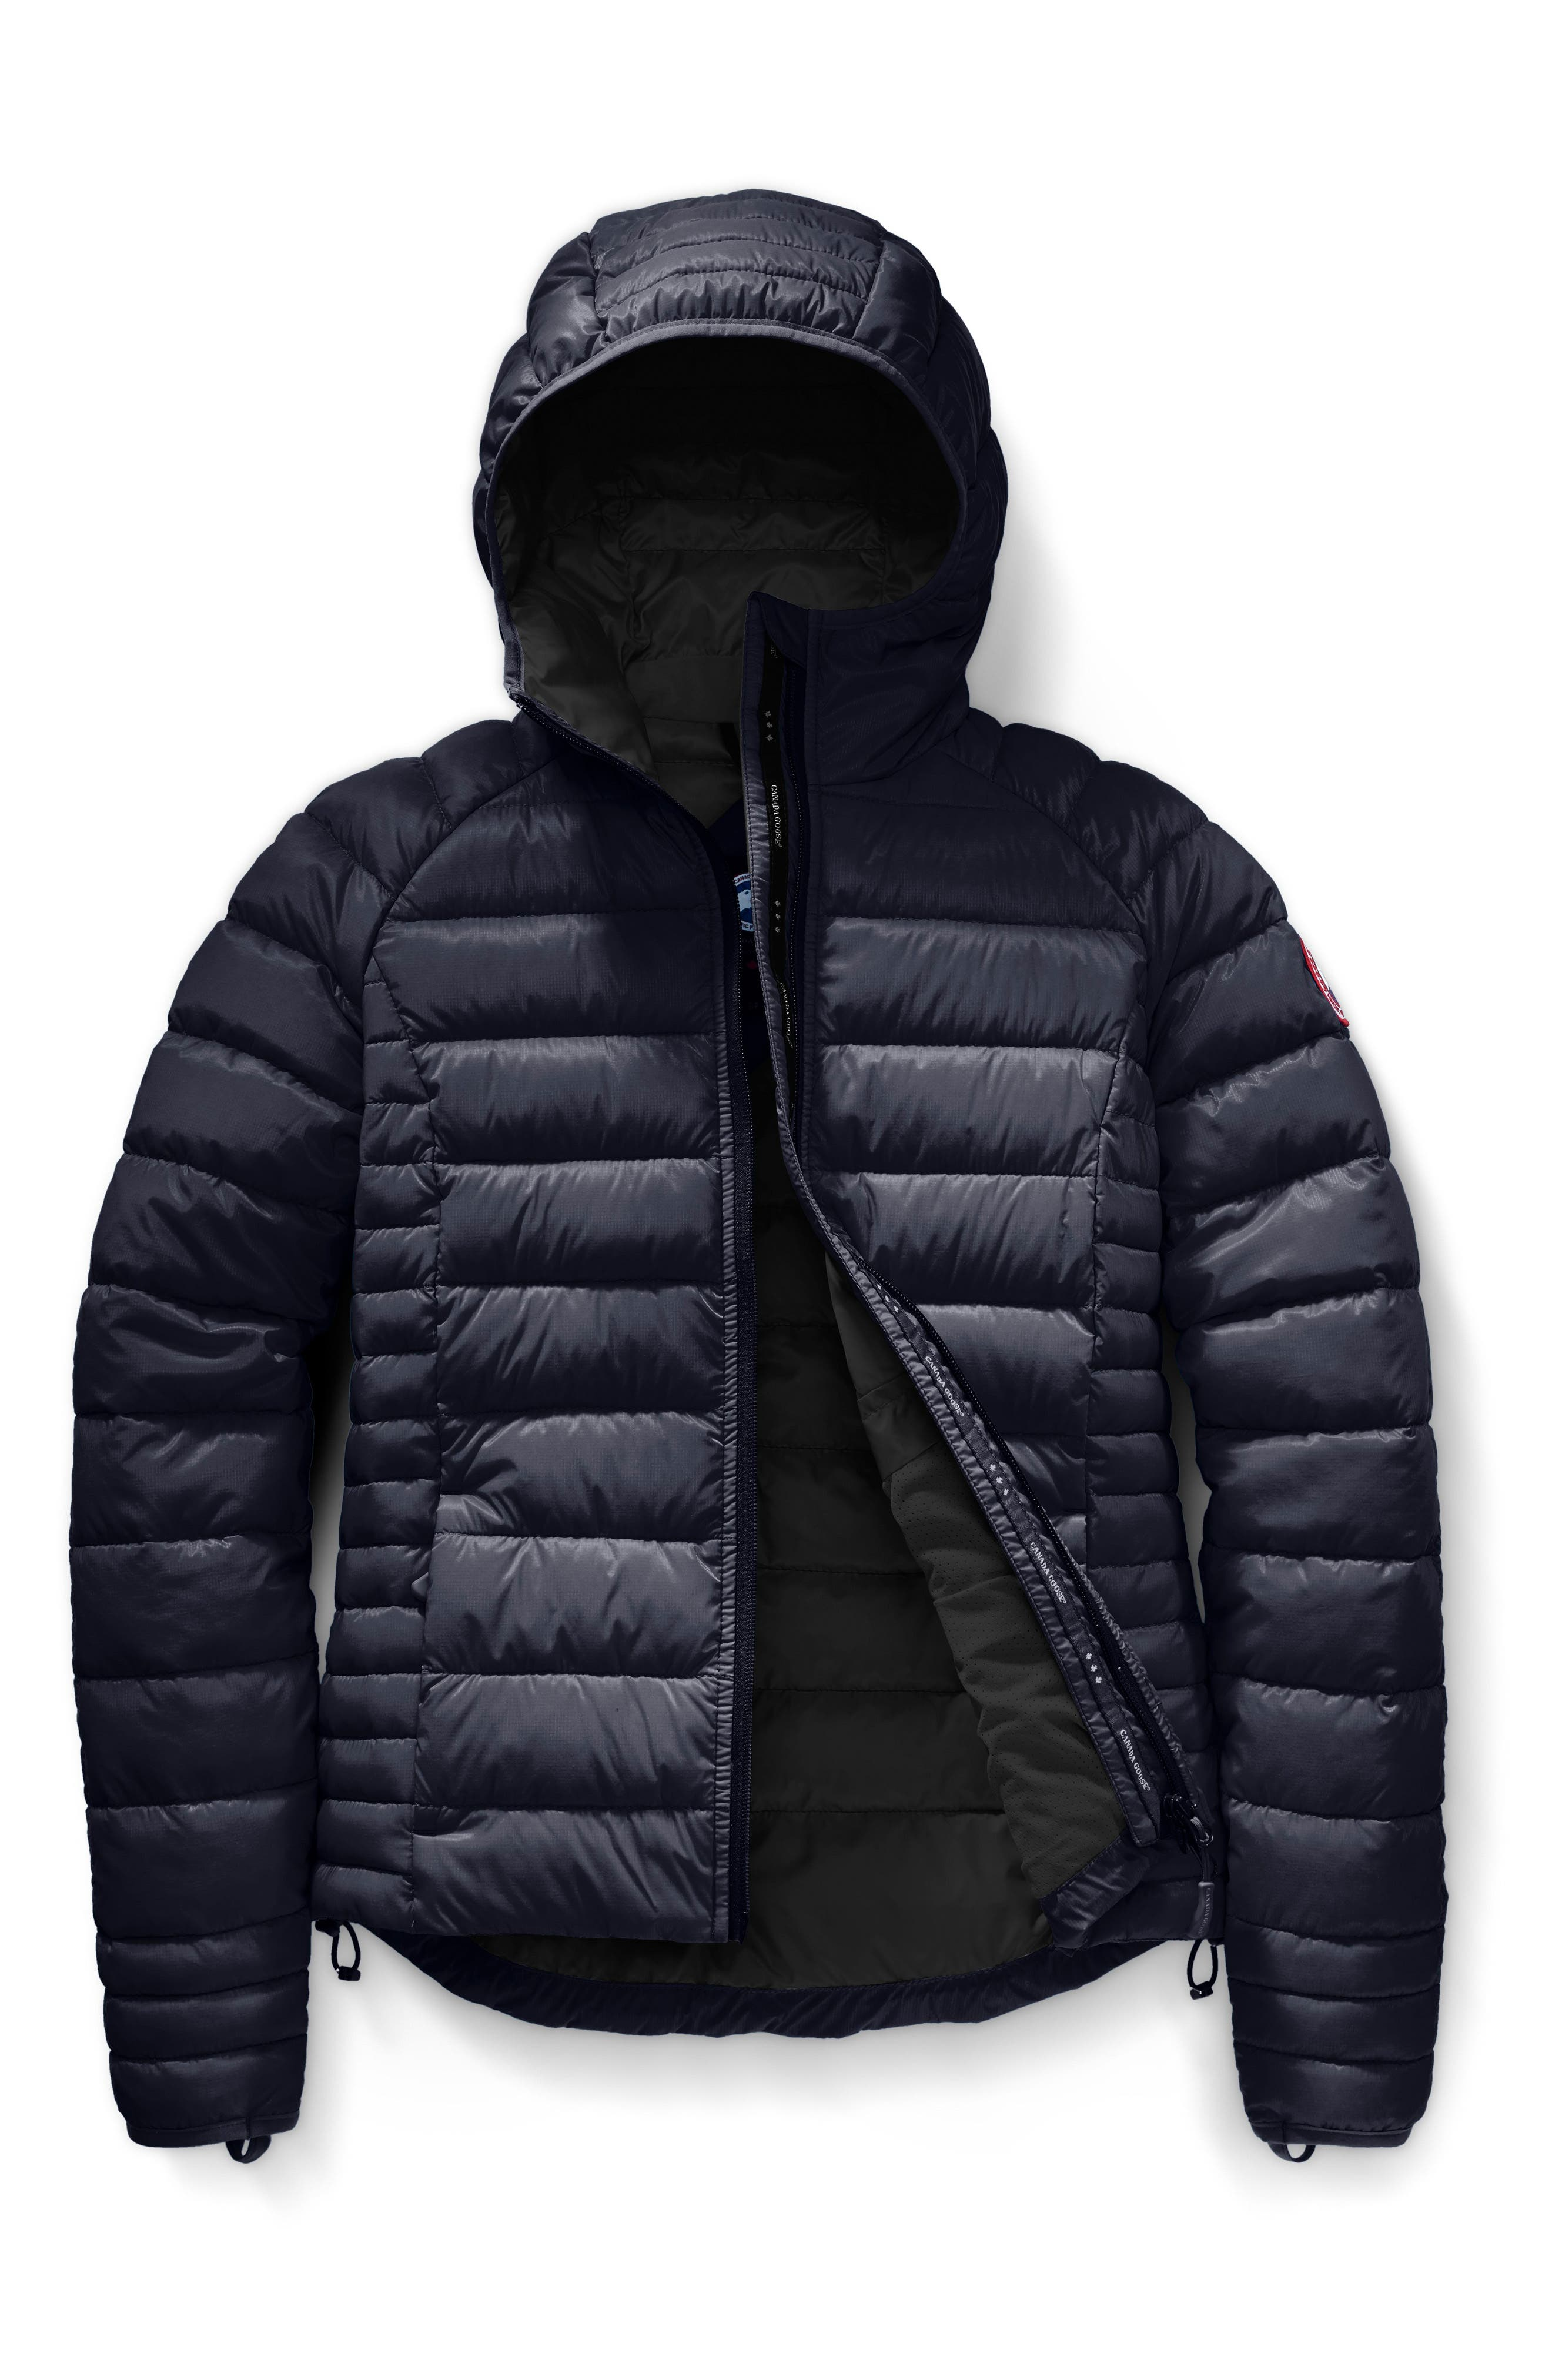 'Brookvale' Packable Hooded Quilted Down Jacket,                             Alternate thumbnail 4, color,                             ADMIRAL BLUE/ BLACK